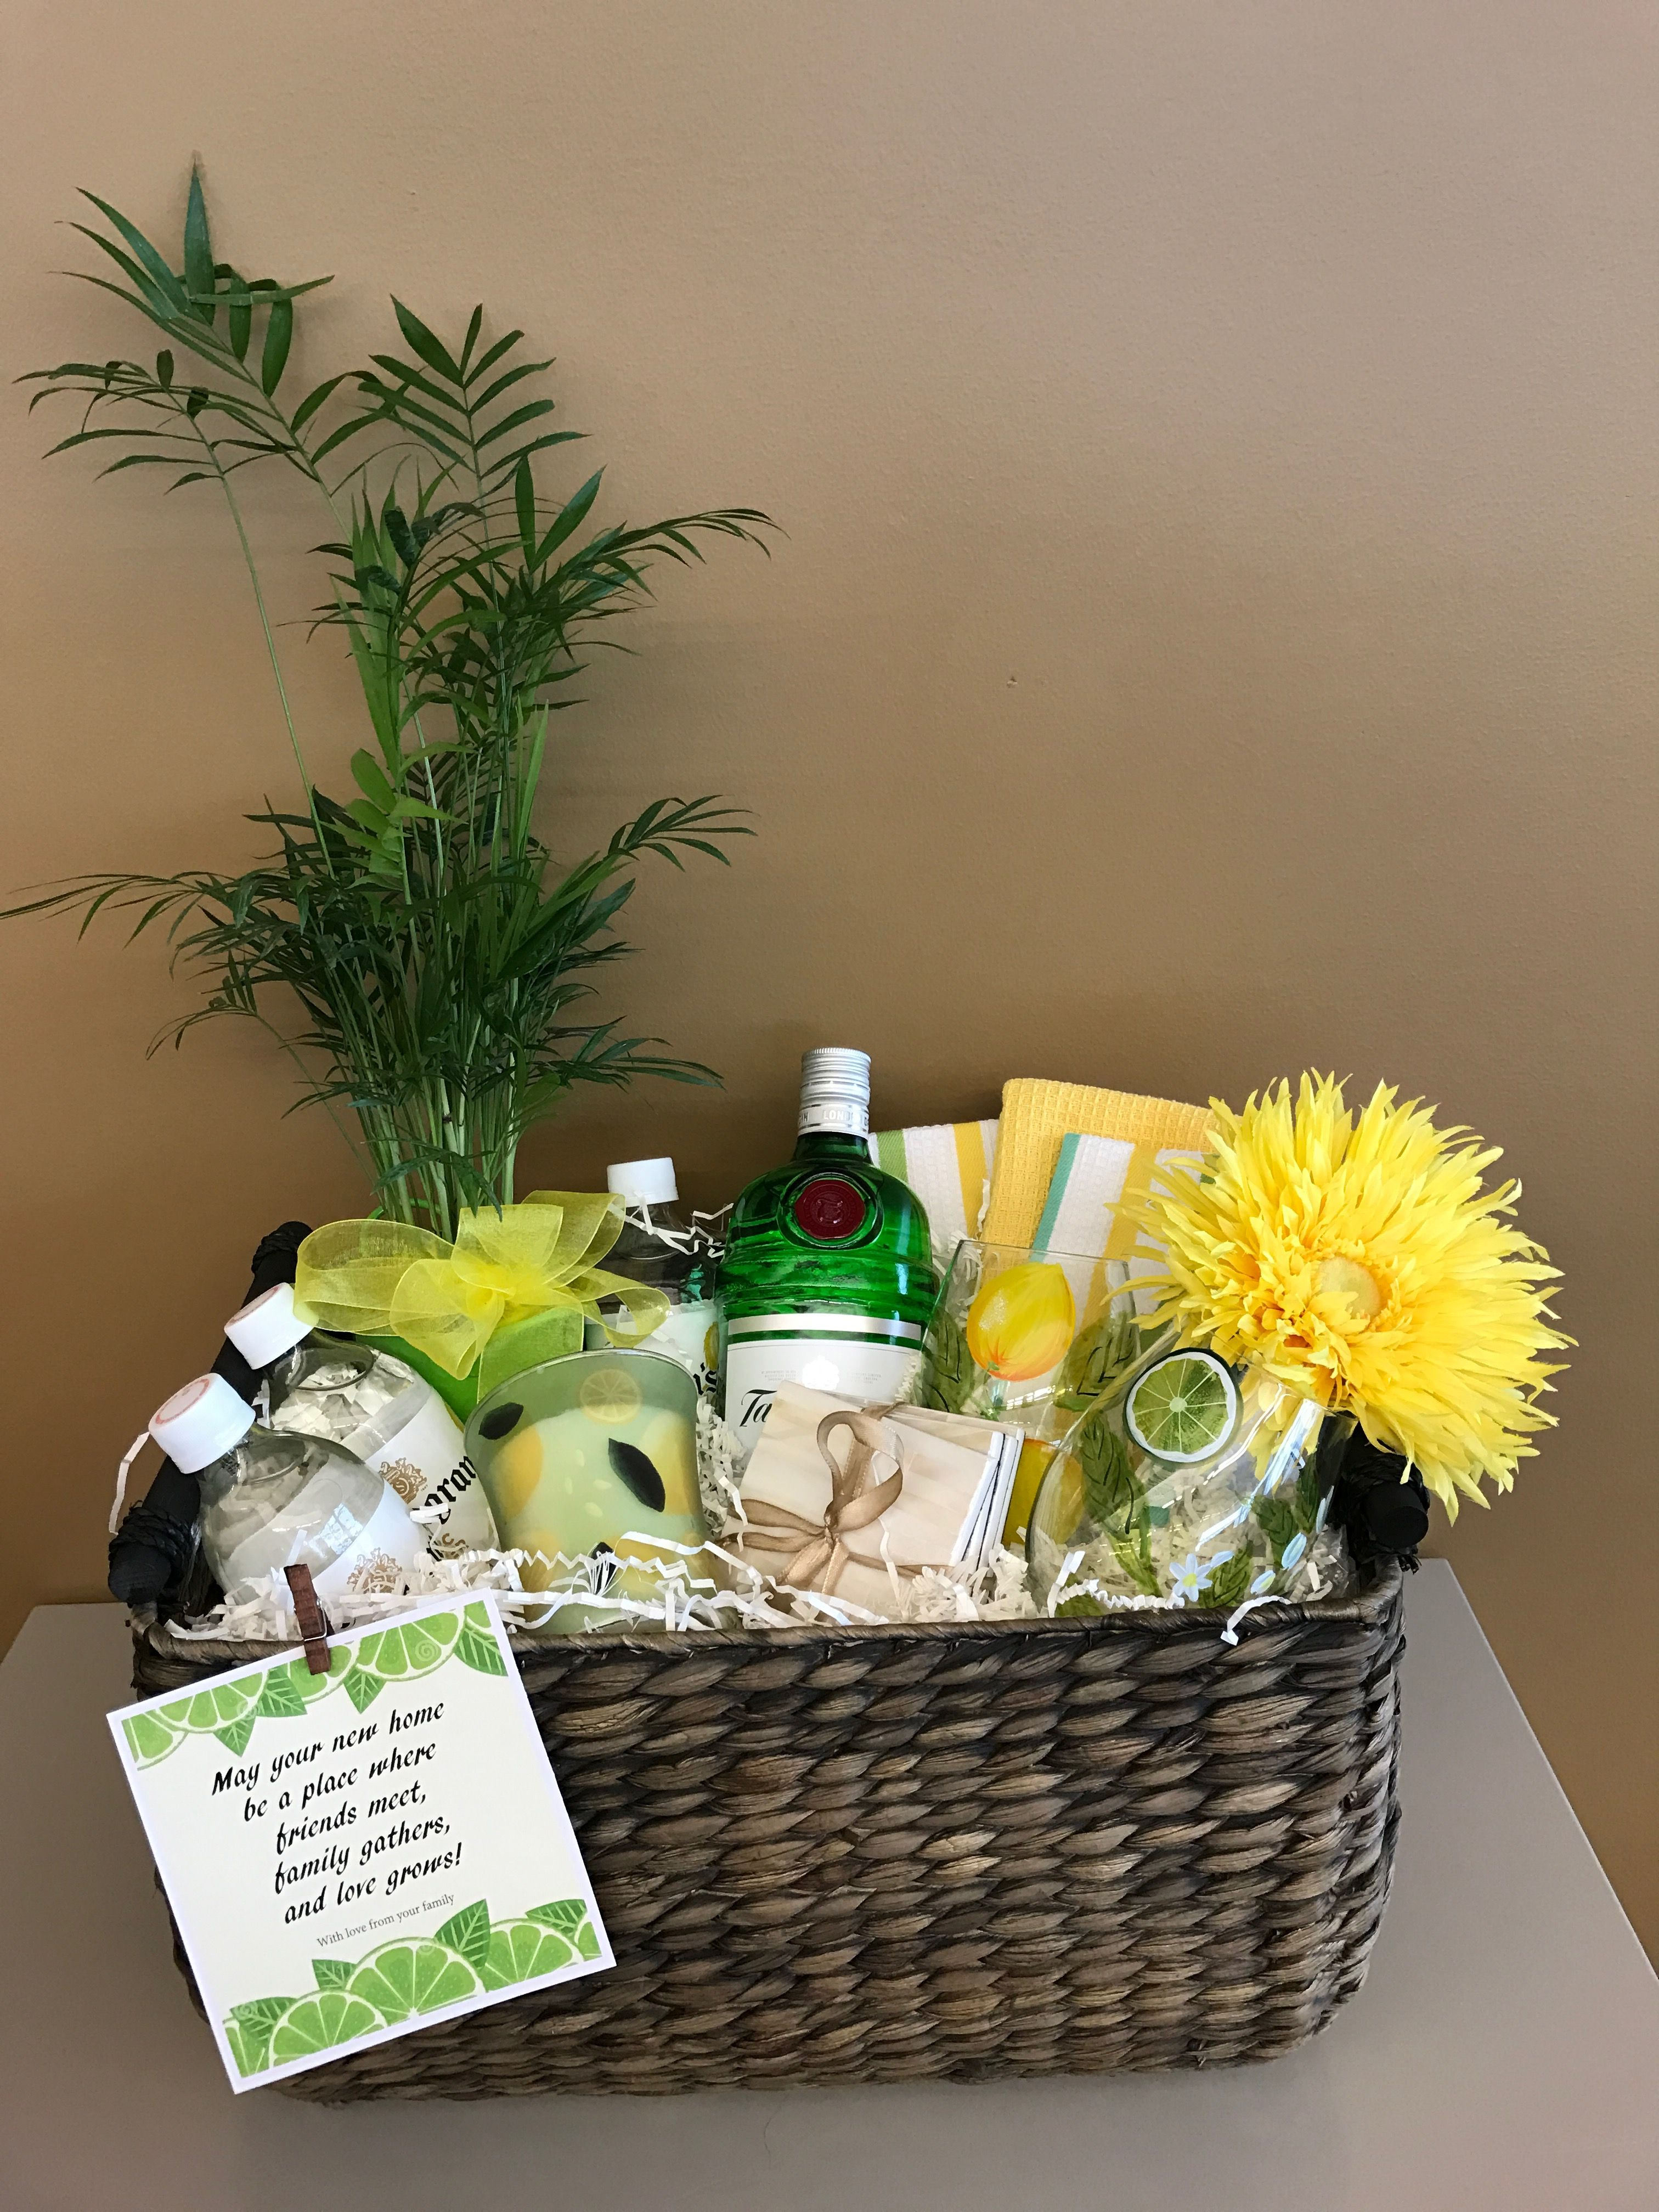 Gin And Tonic Basket With Lemon Lime Theme Filled With G C Hand